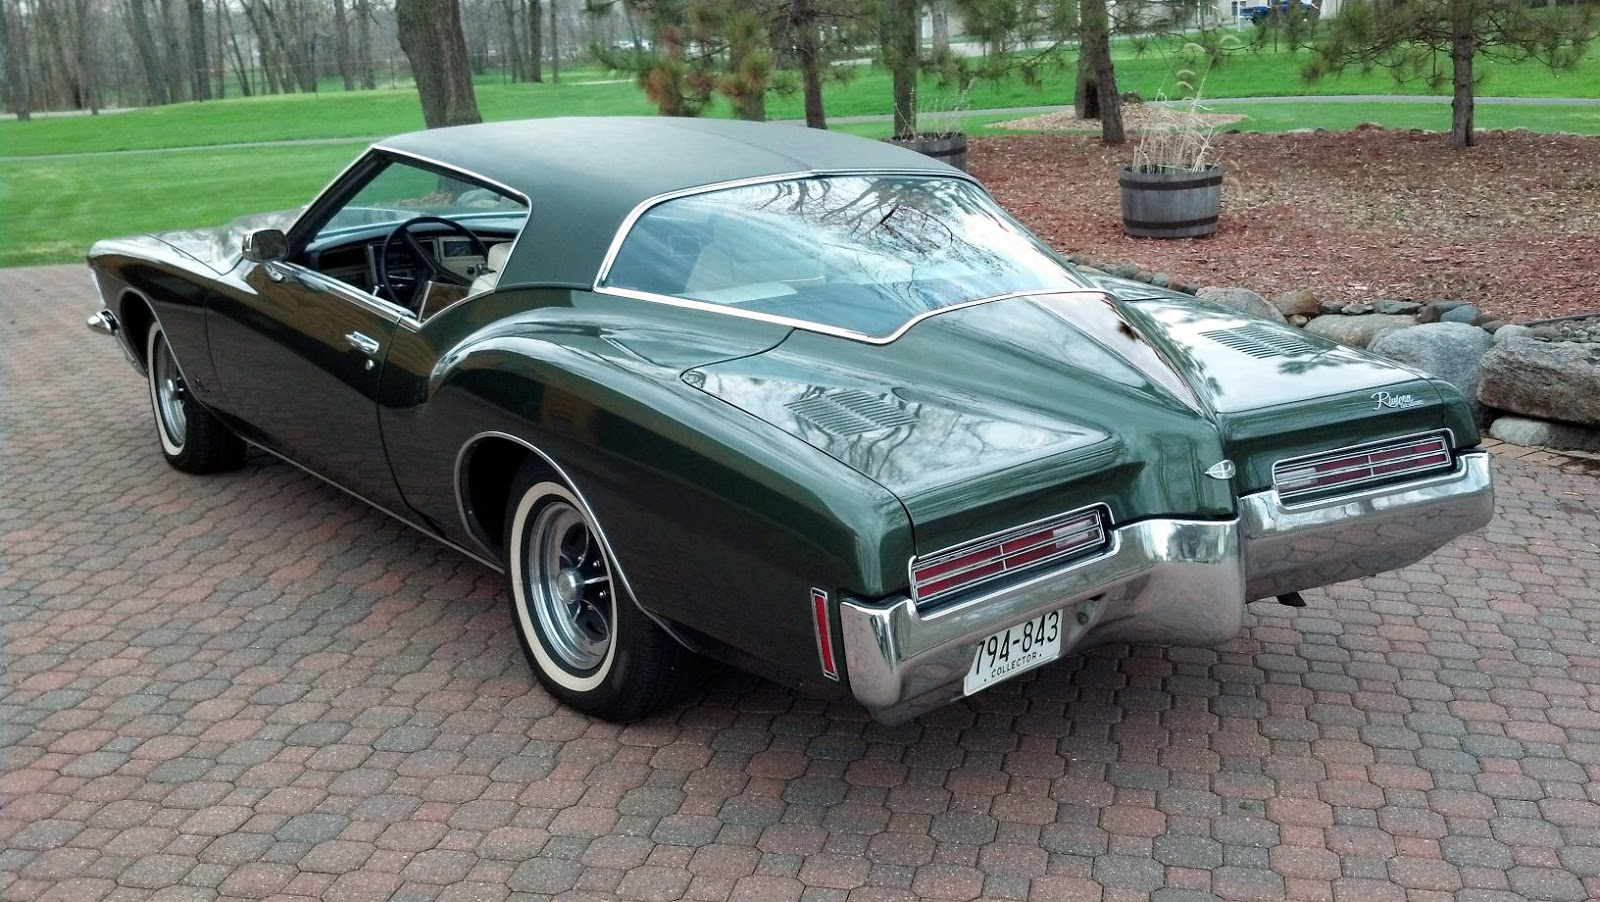 Buick Riviera Project Car For Sale